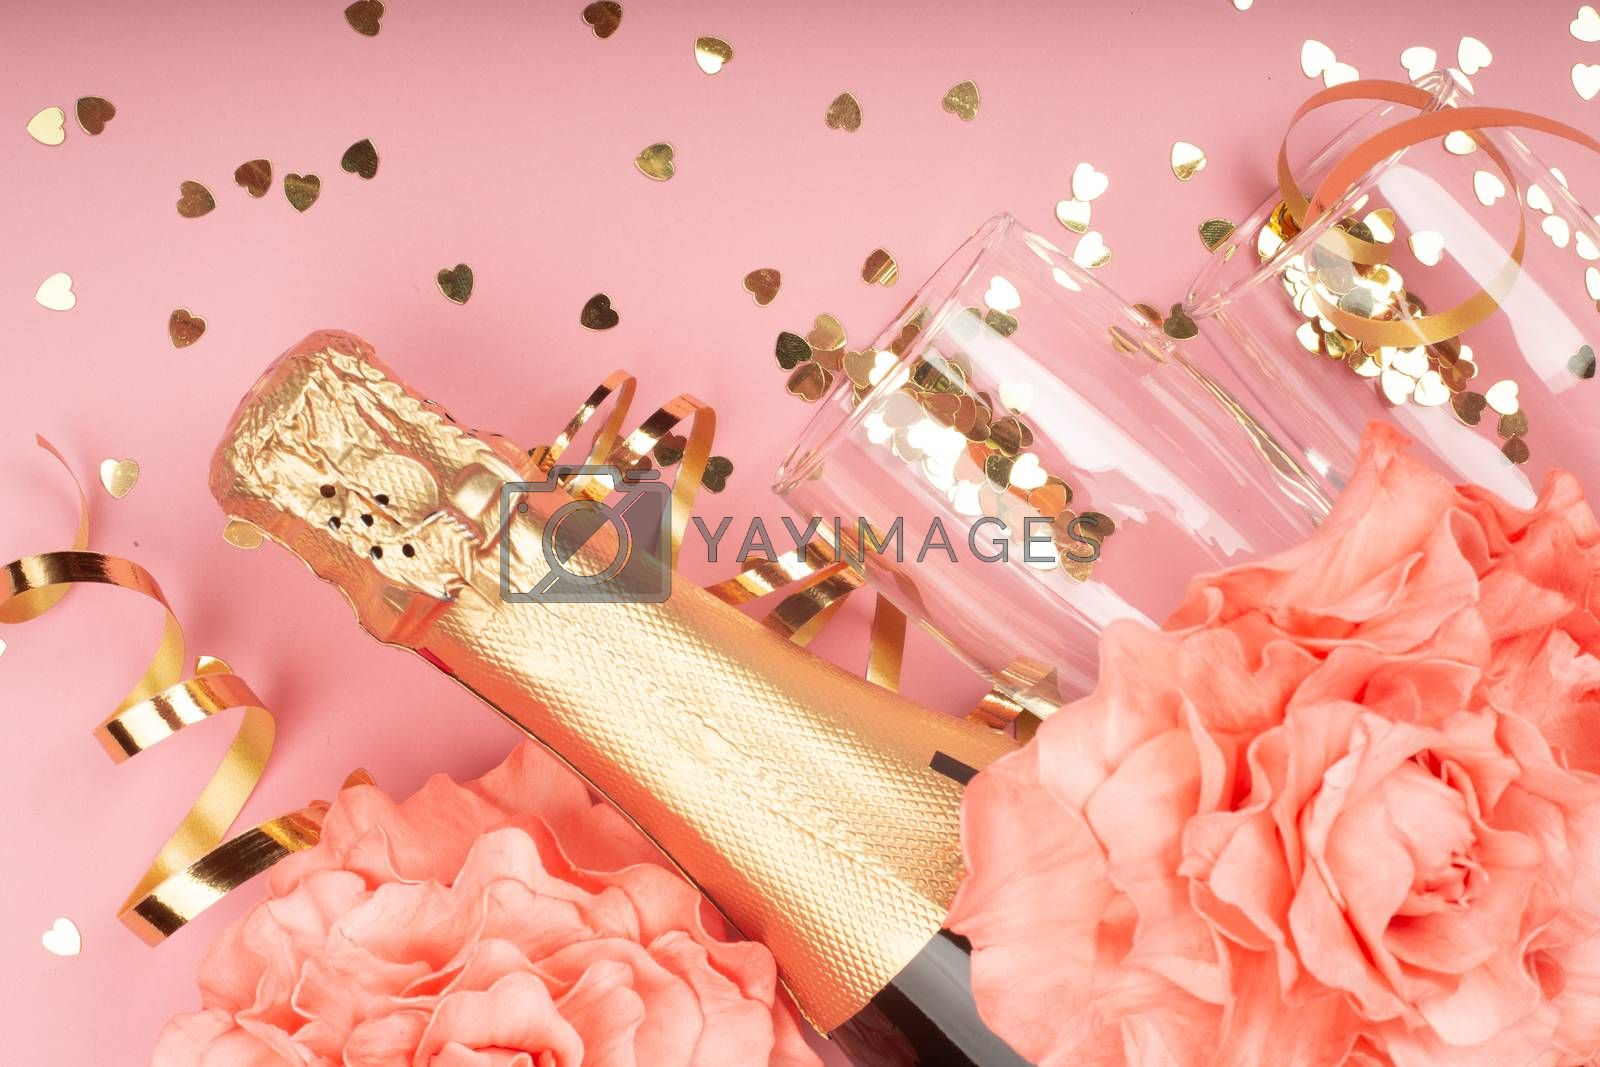 Valentines day champagne bottle flute glasses golden confetti hearts rose flowers and serpentine on pink background with copy space for text